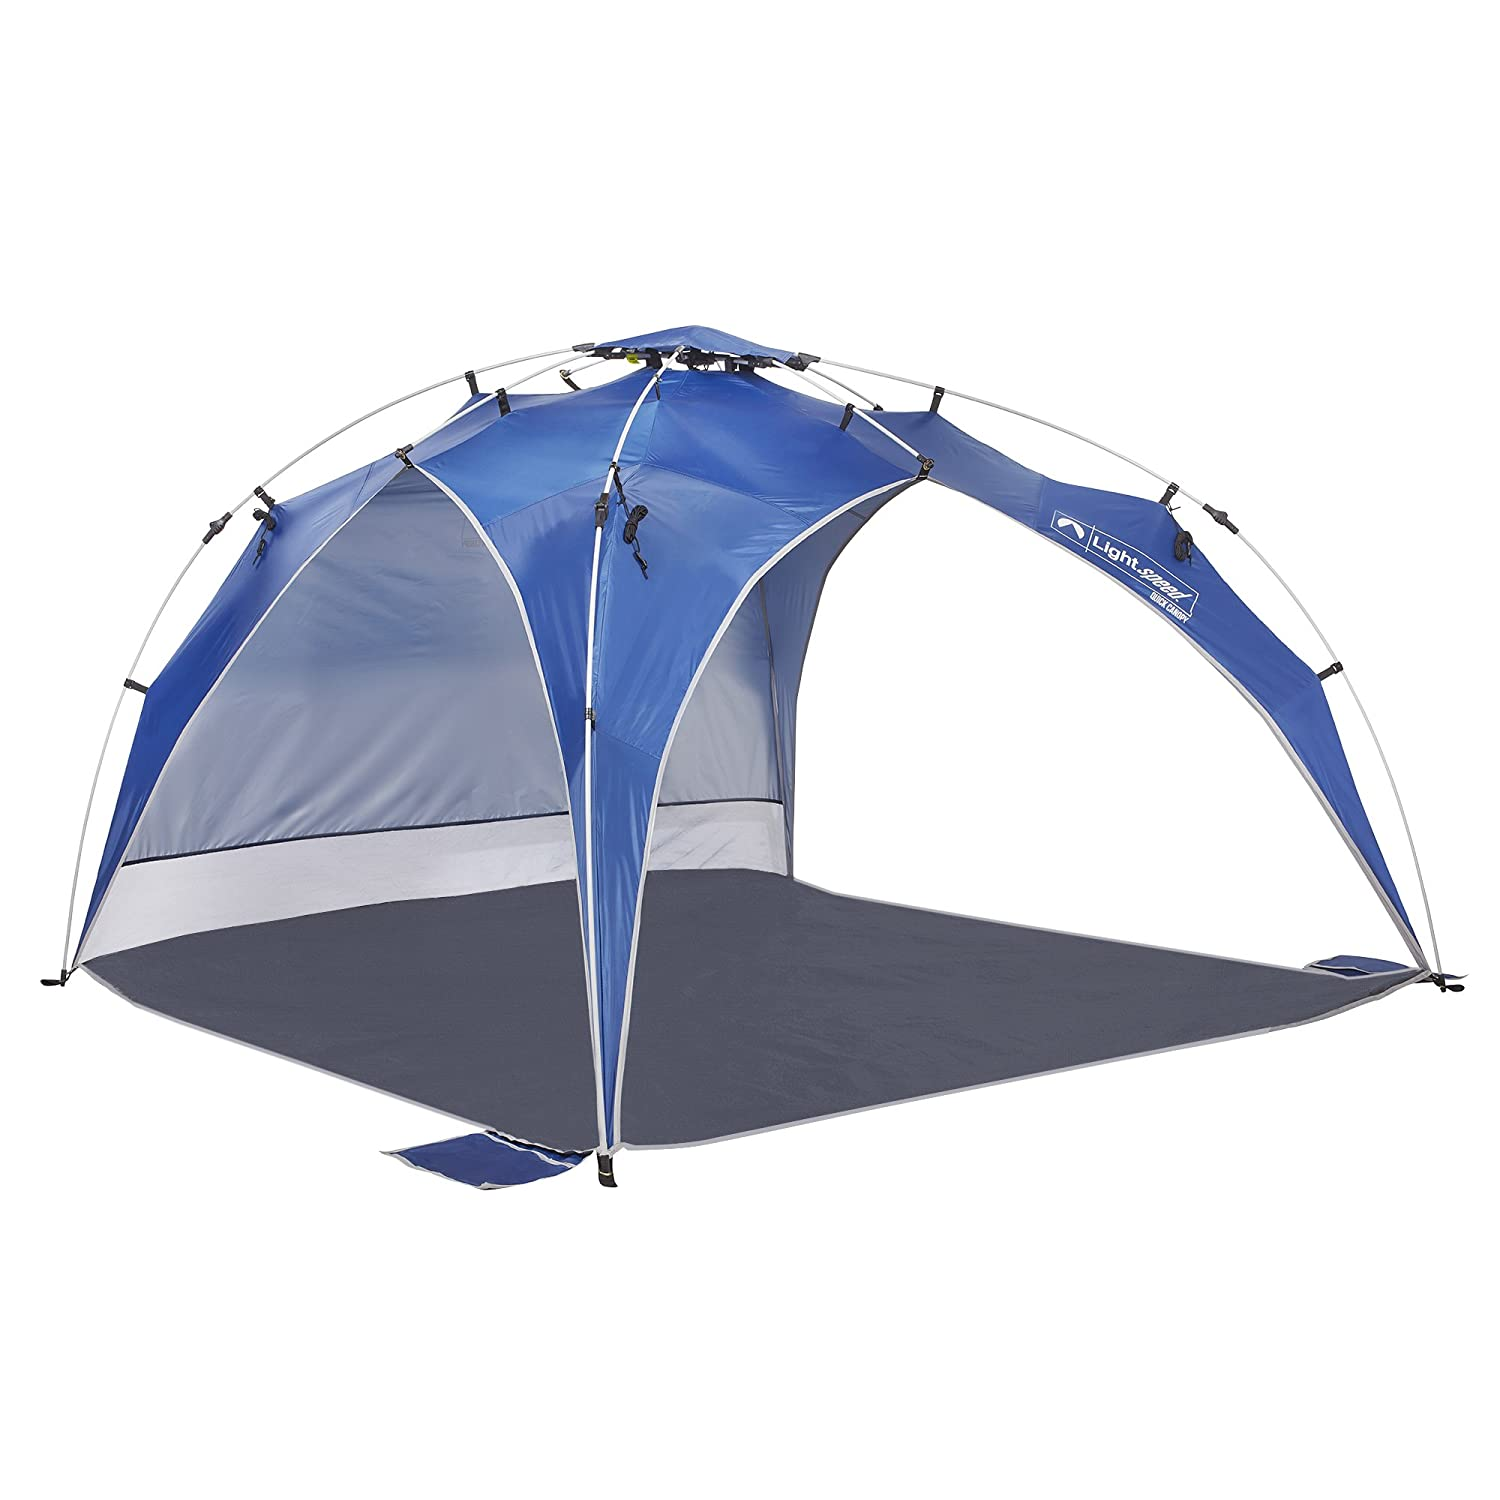 alps chaos lynx season mountaineering awning tent review tri larger l person view